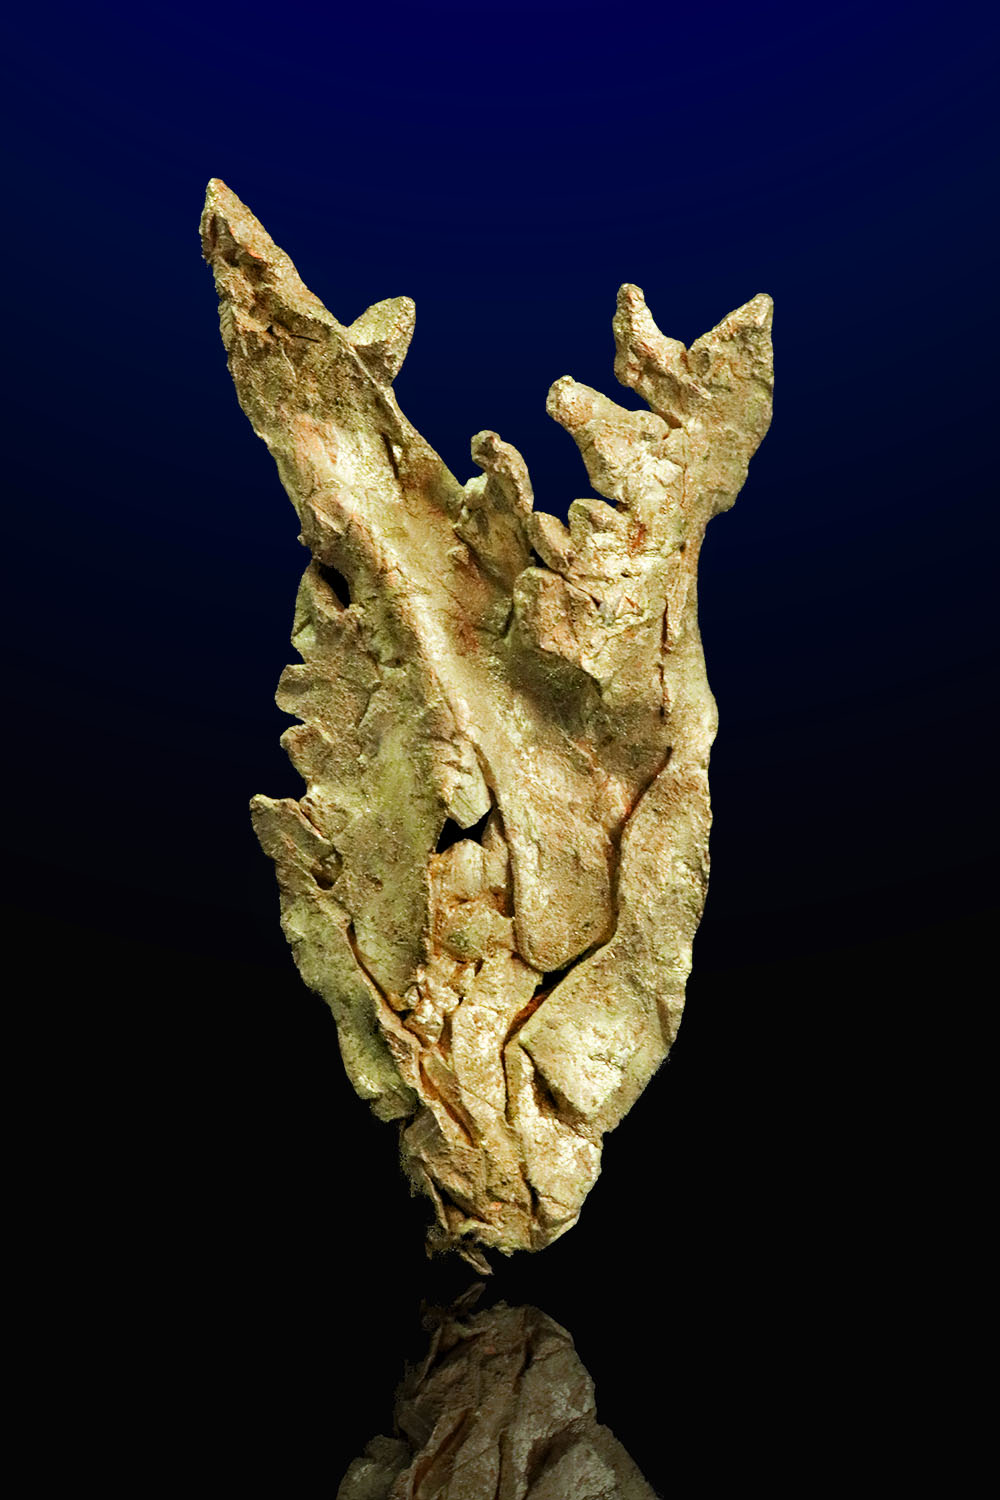 Mt. Kare - Papua New Guinea - Intricate Gold Specimen